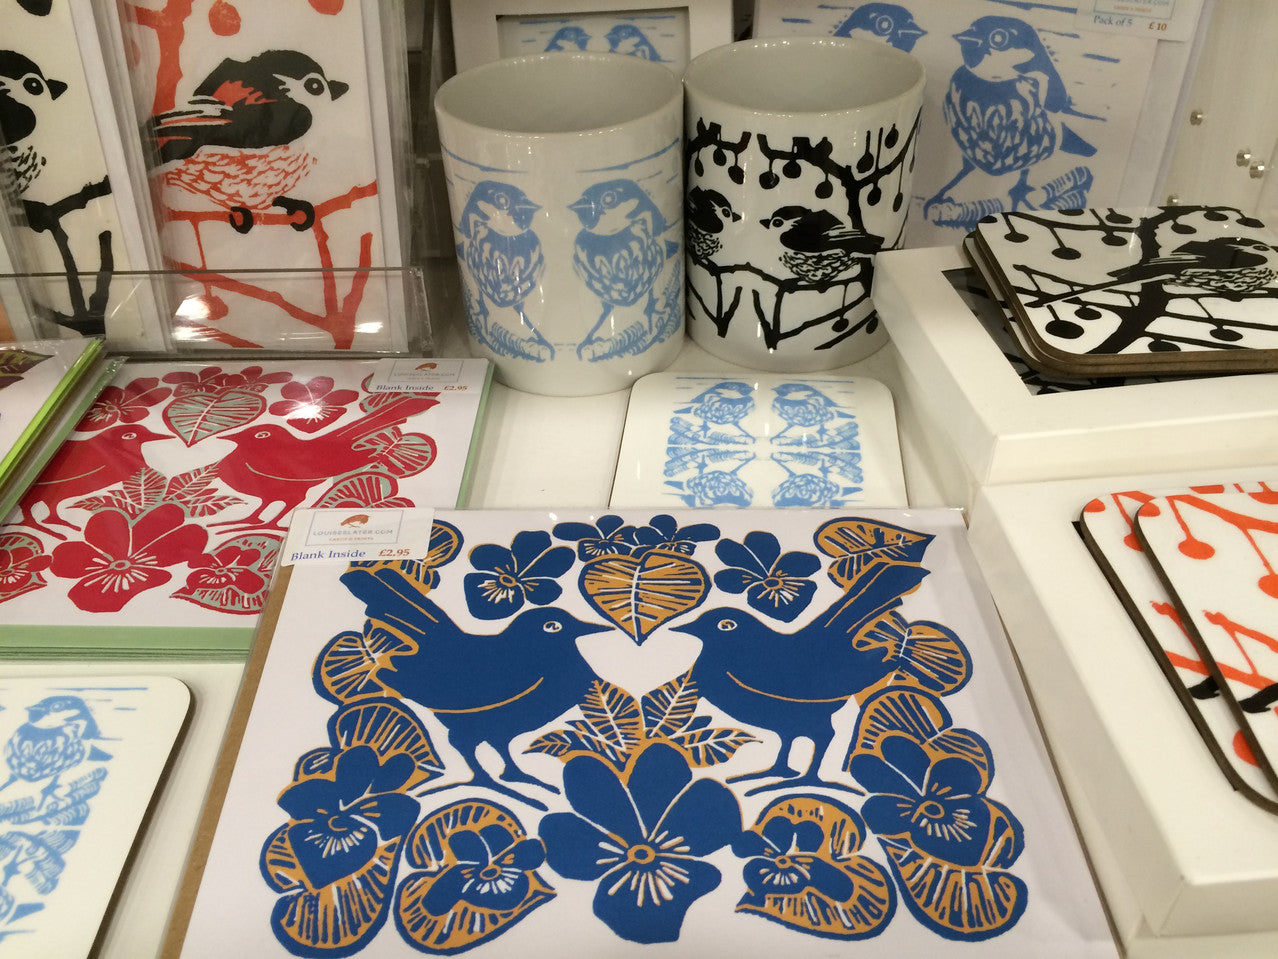 Louise Slater Cards & Prints at Things British St Pancras